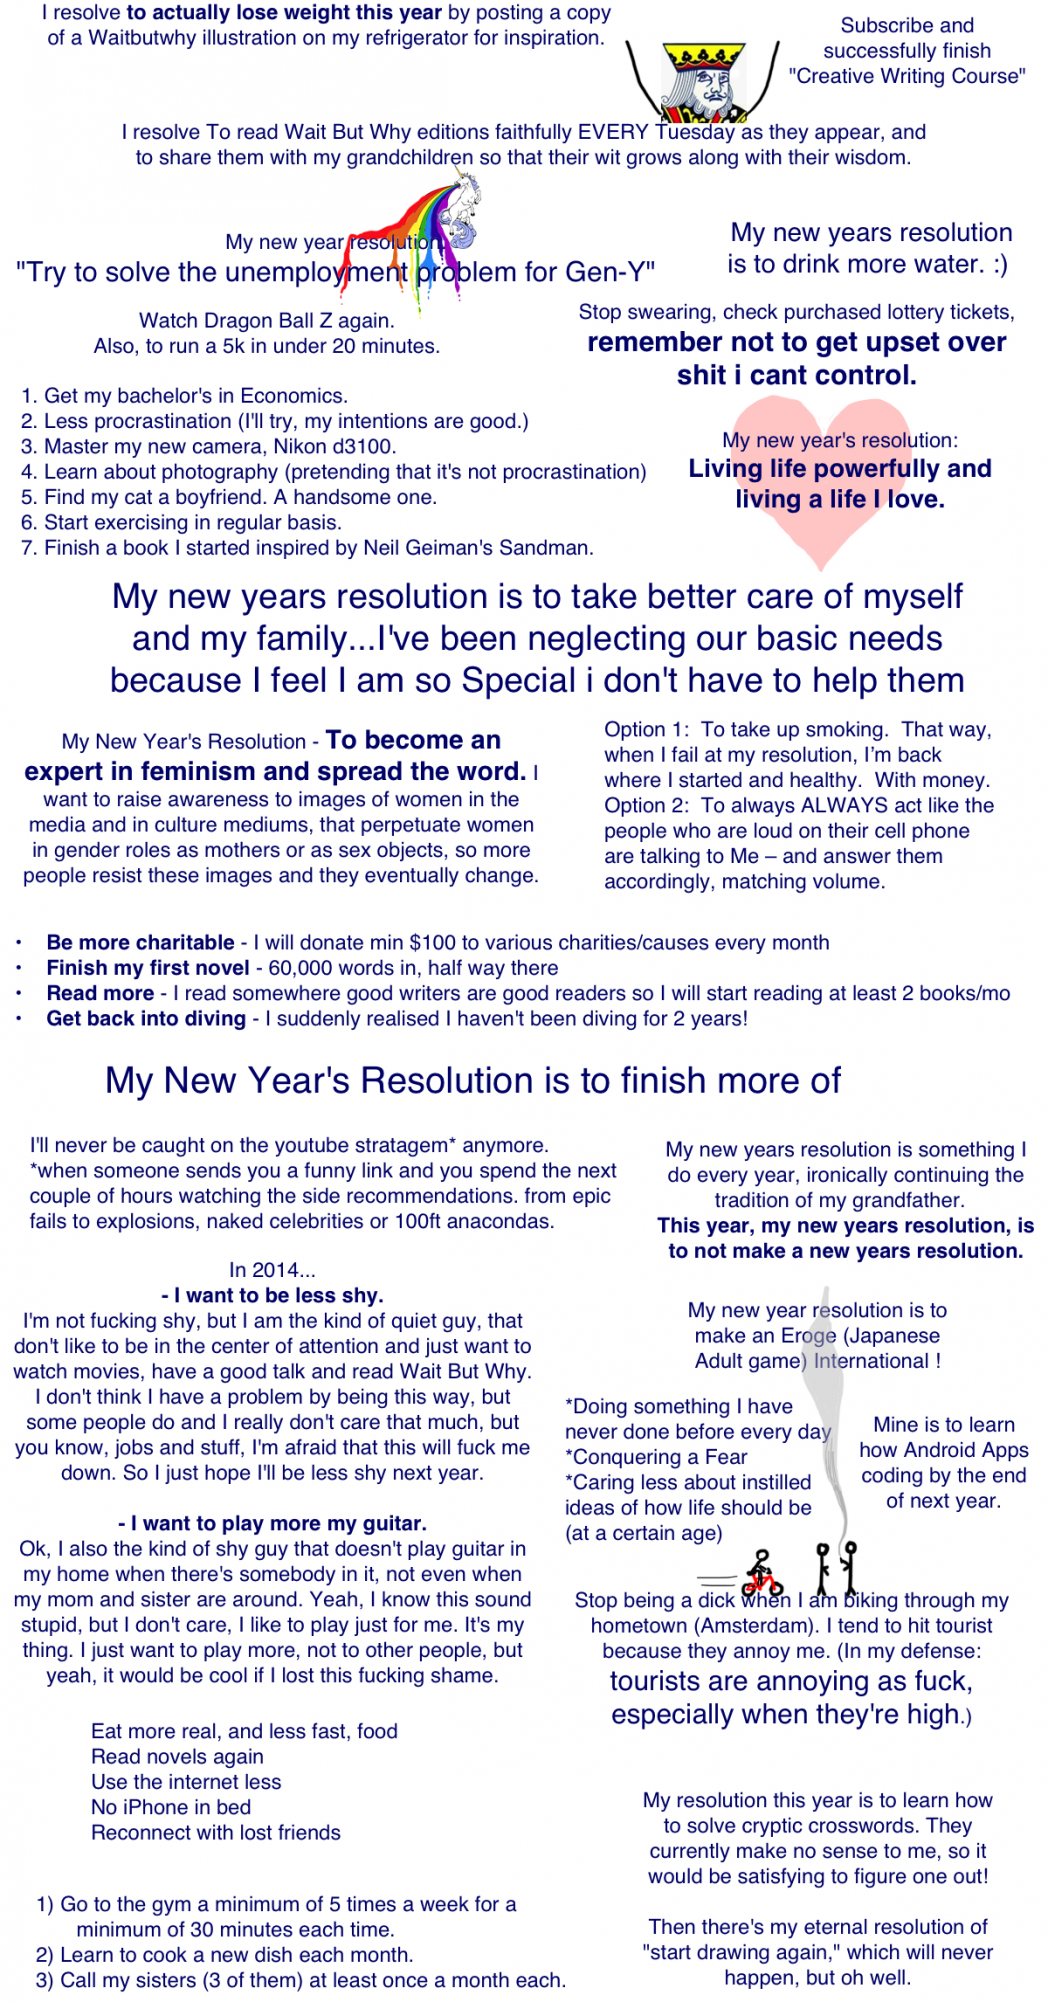 016 New Year Resolutions Essay On My Resolution Write An Happy Ye 1048x2002 Singular Student Tagalog In Hindi Full